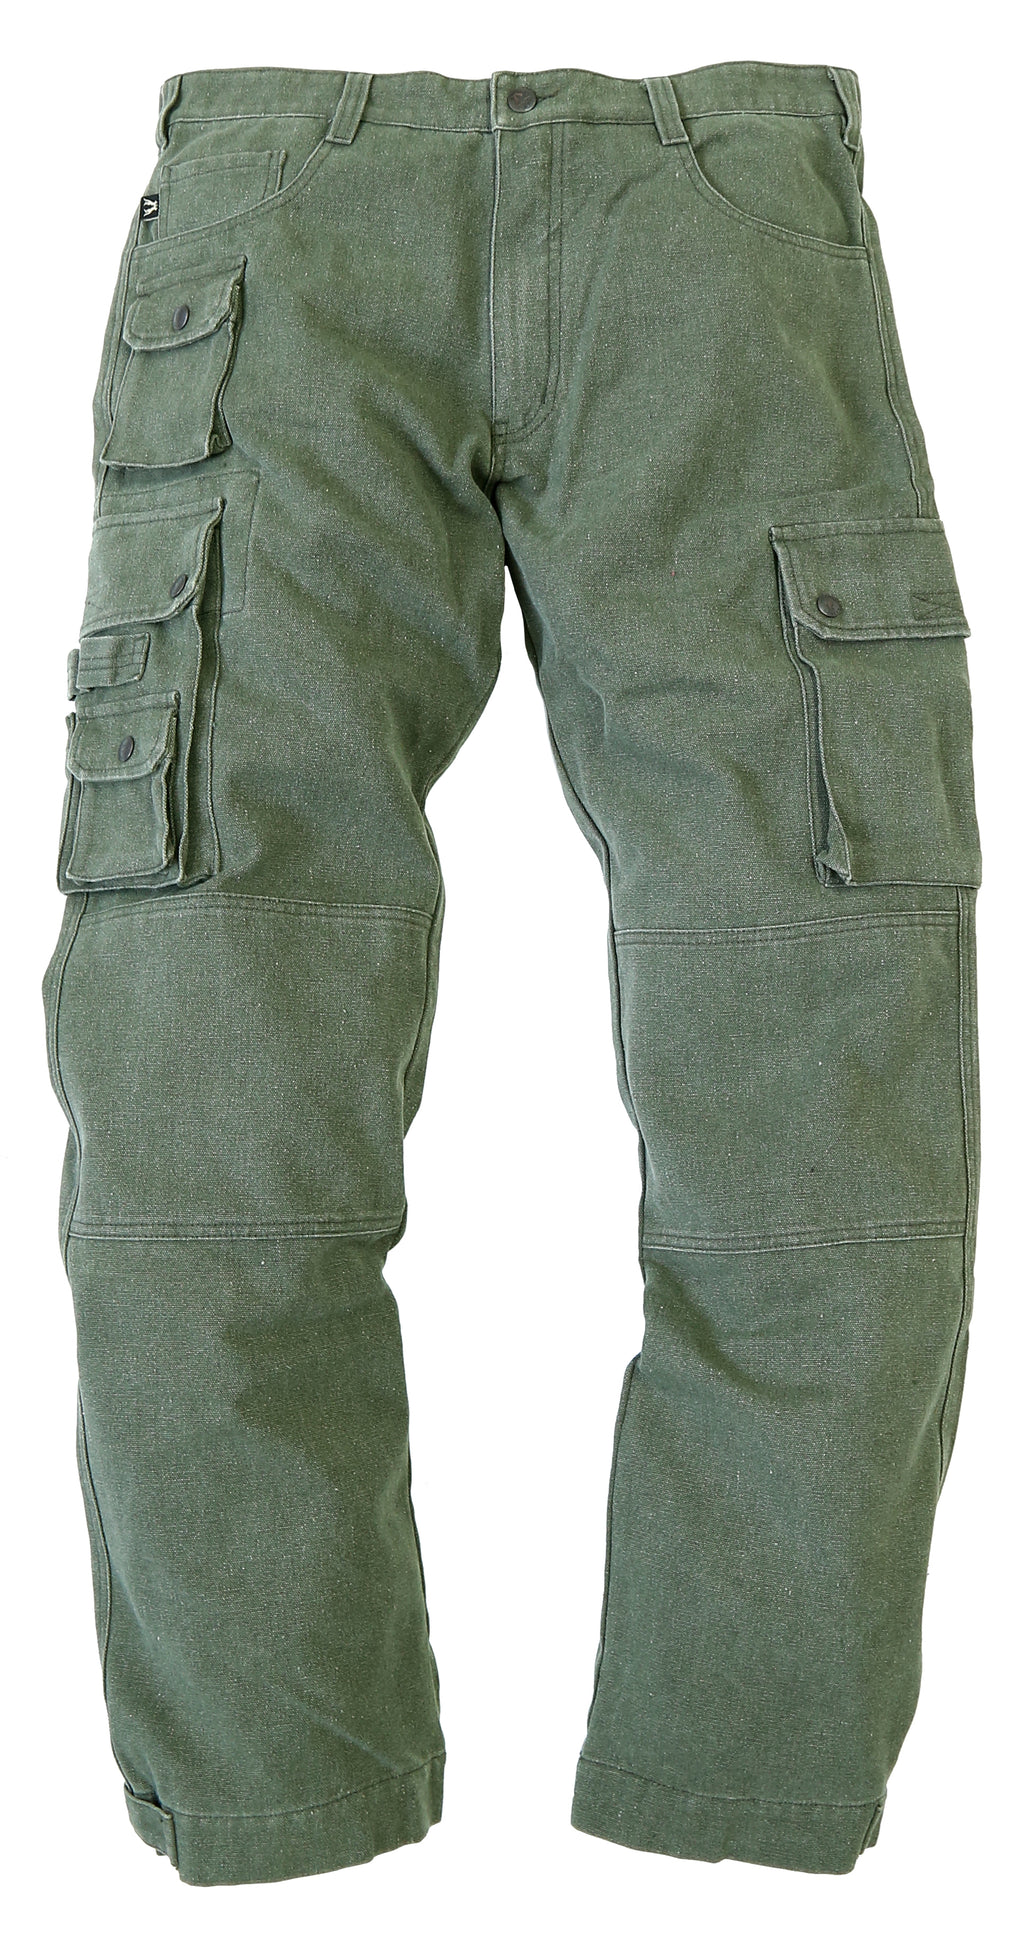 Leisure | Outdoor | Cargo pants utility with many pockets | comfortable leg - OUT OF AUSTRALIA | Kakadu Traders Australia